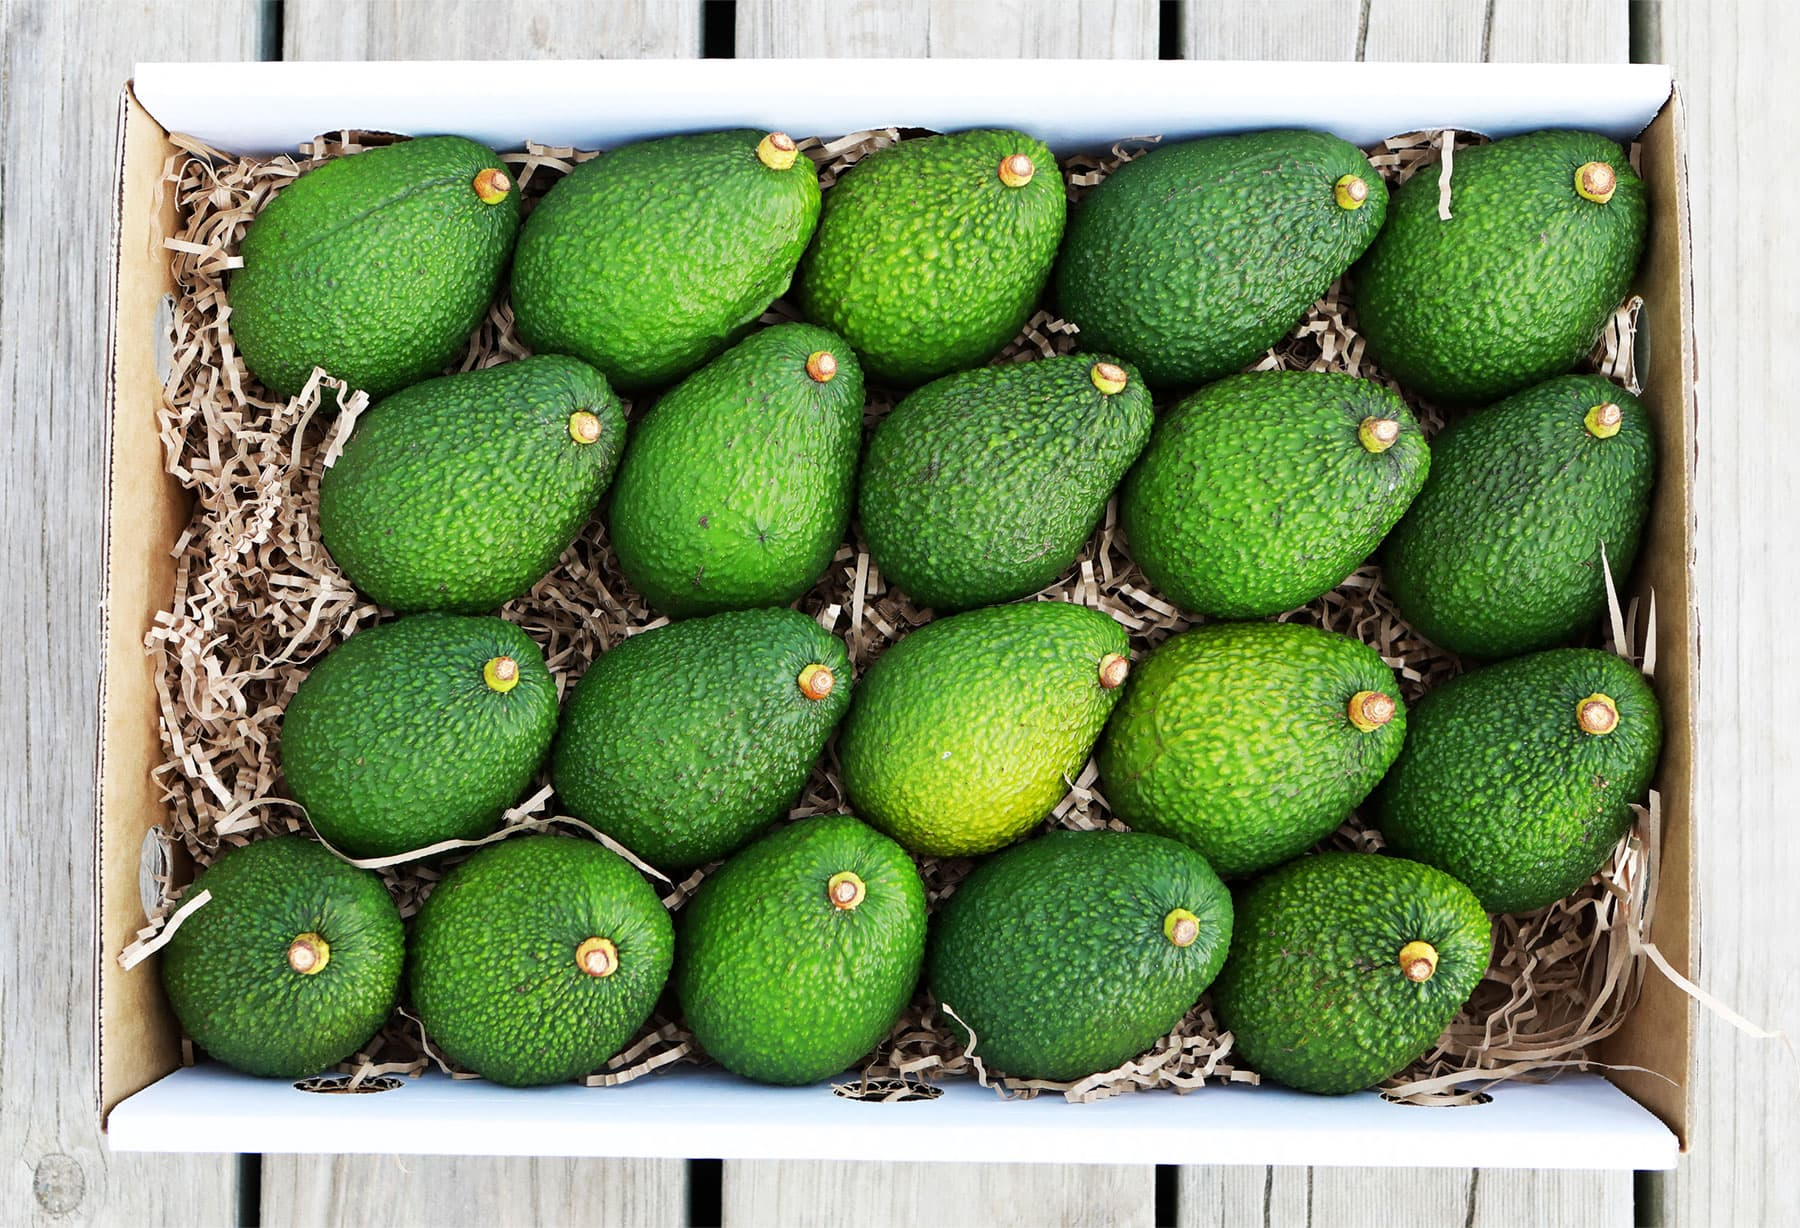 5.5kg box of Hass Avocados